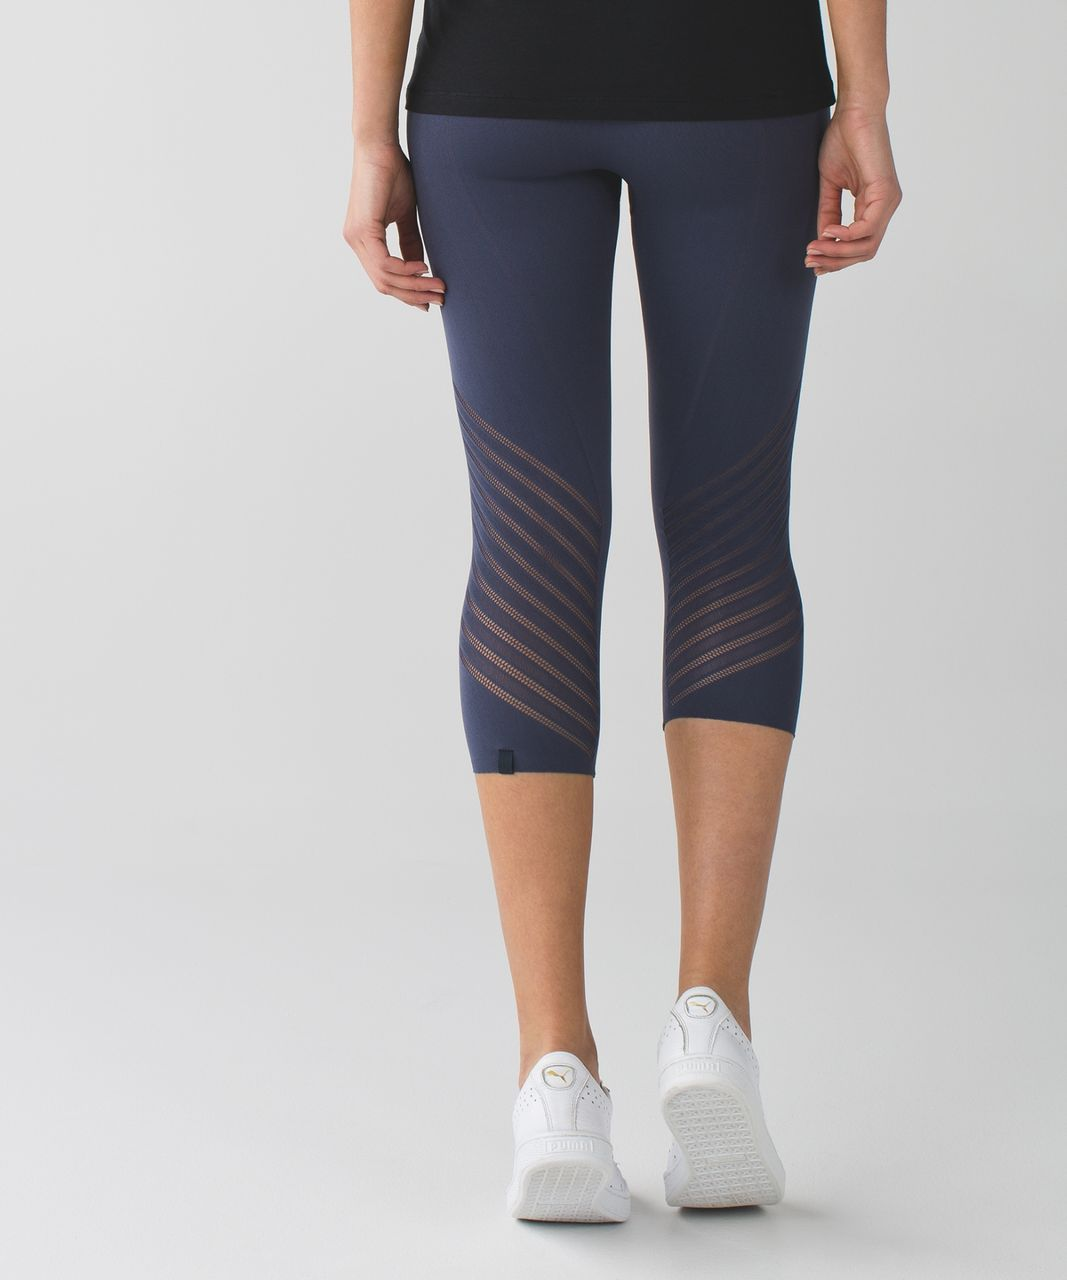 Lululemon Enlighten Crop - Cadet Blue